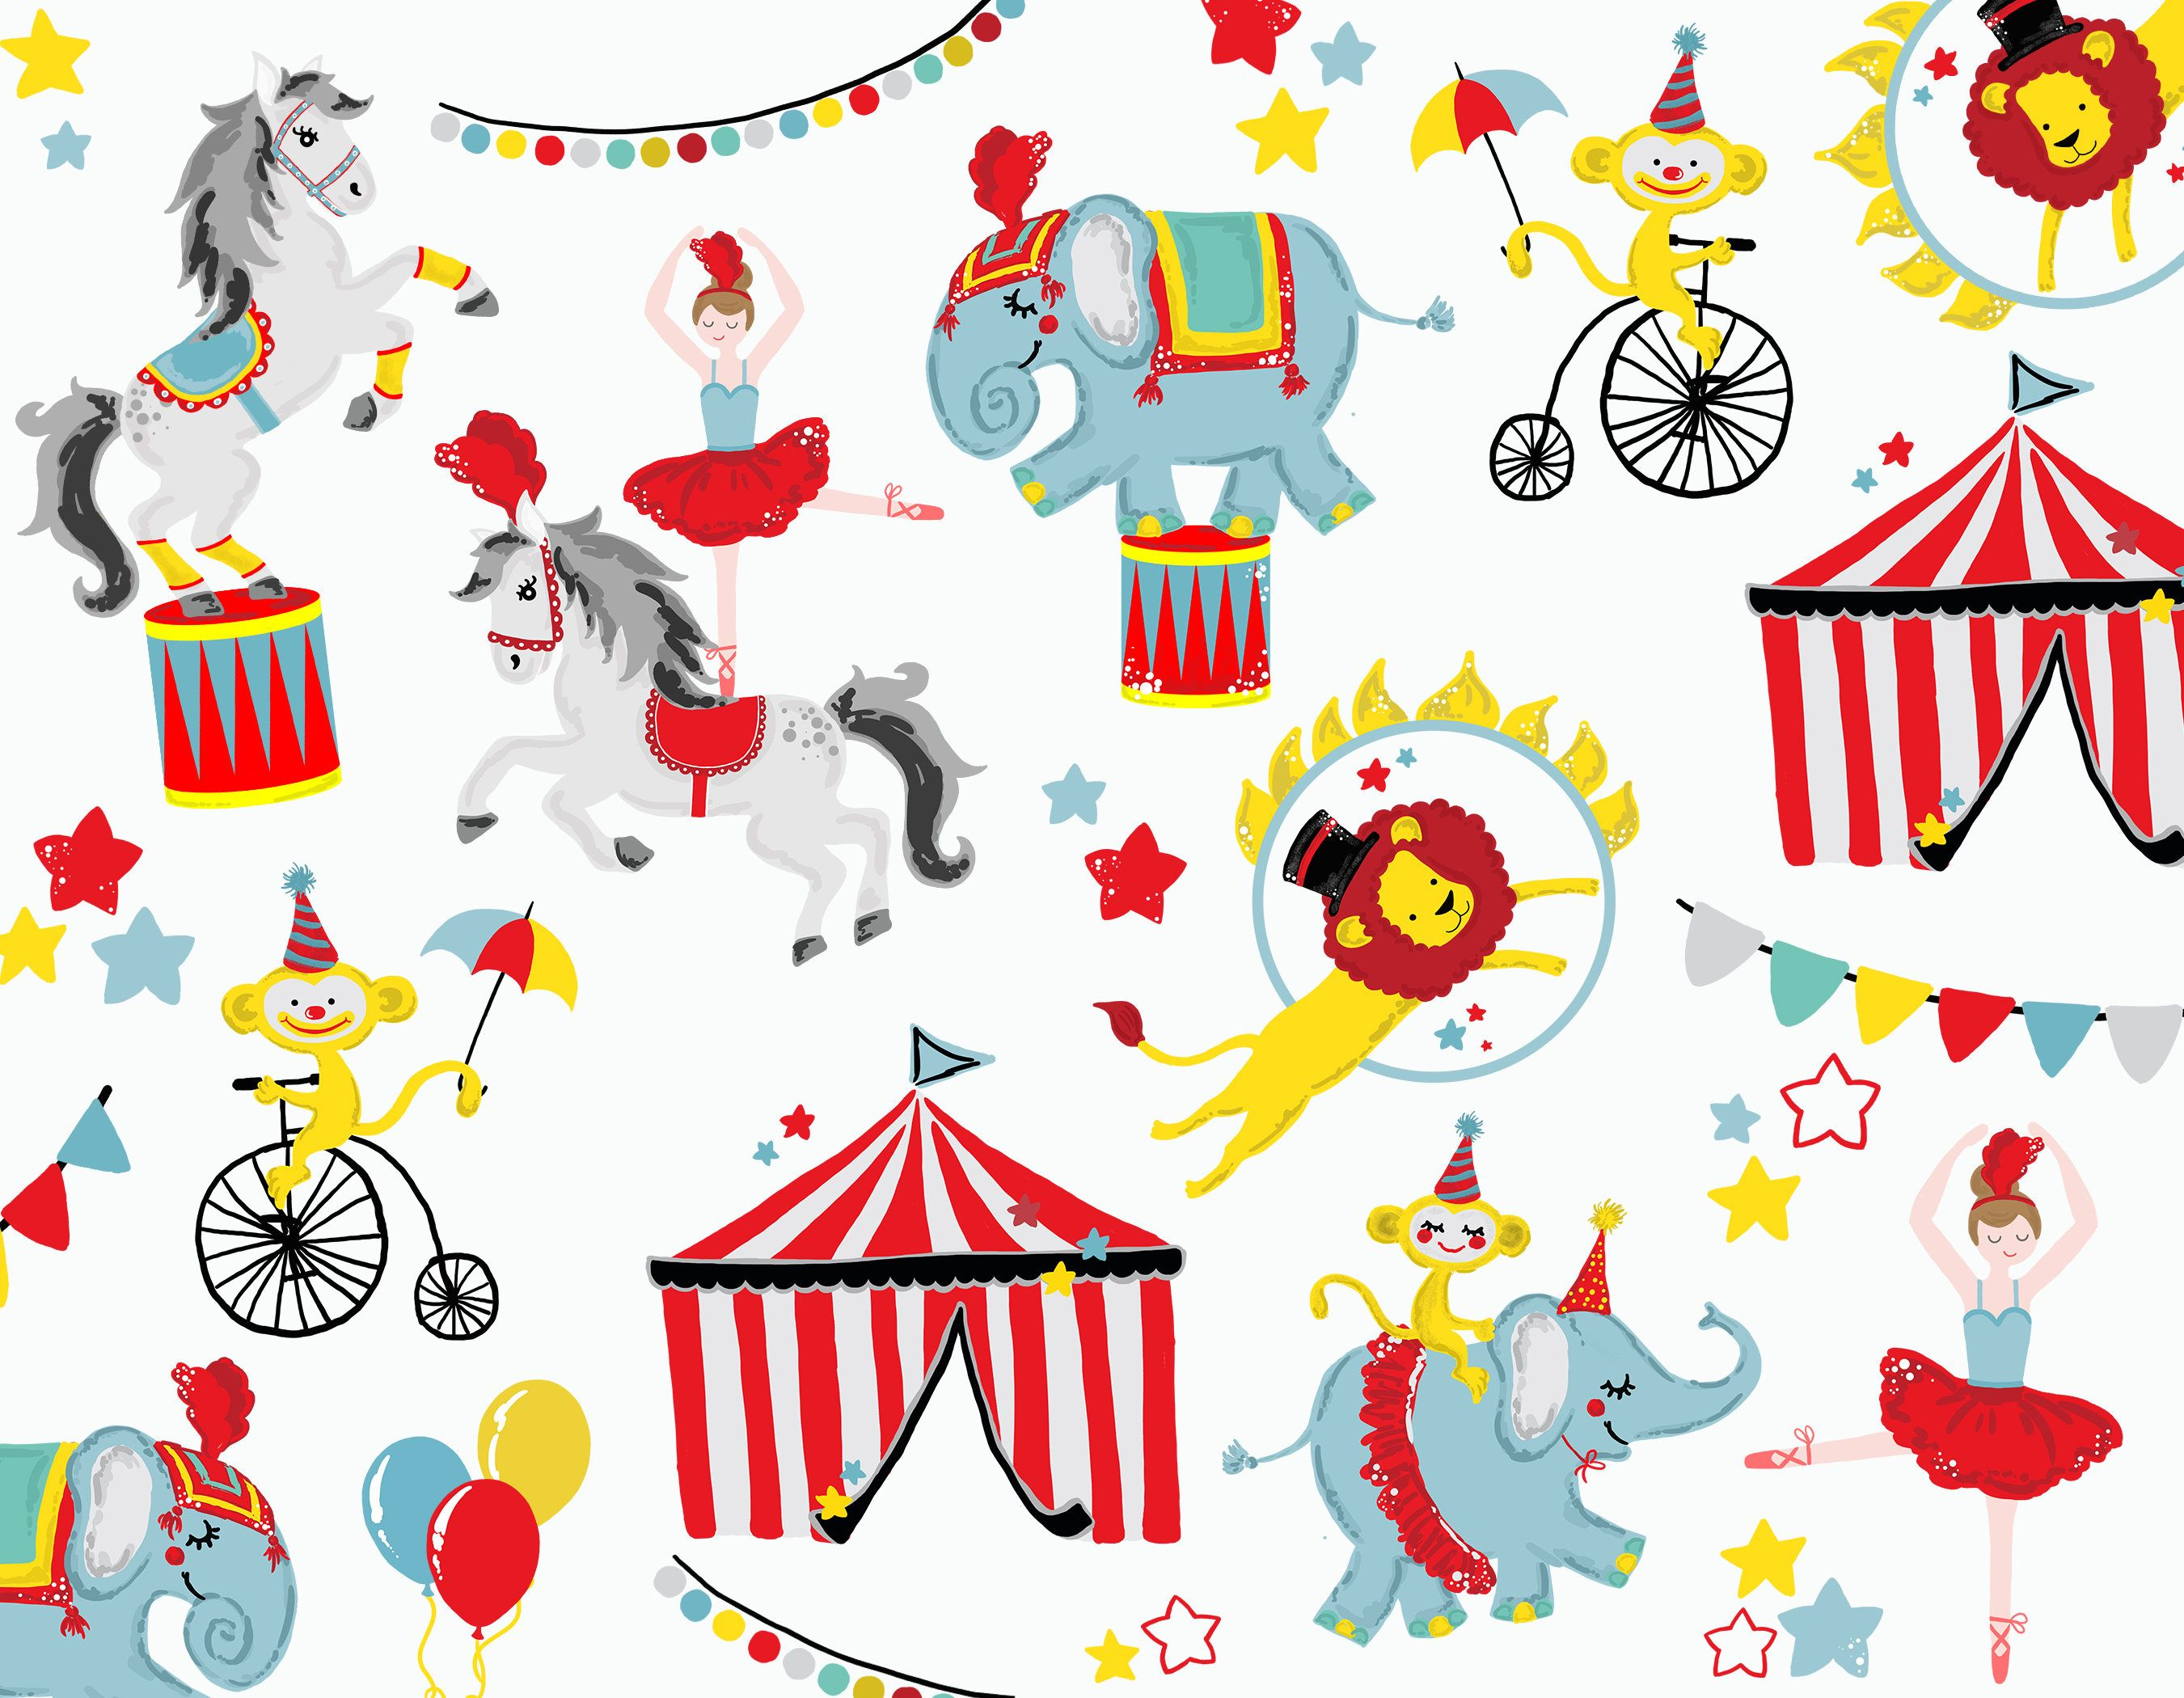 Circus graphics clipart jpg freeuse Circus Show Clipart, Circus Animals Clip Art, Carnival Celebration ... jpg freeuse